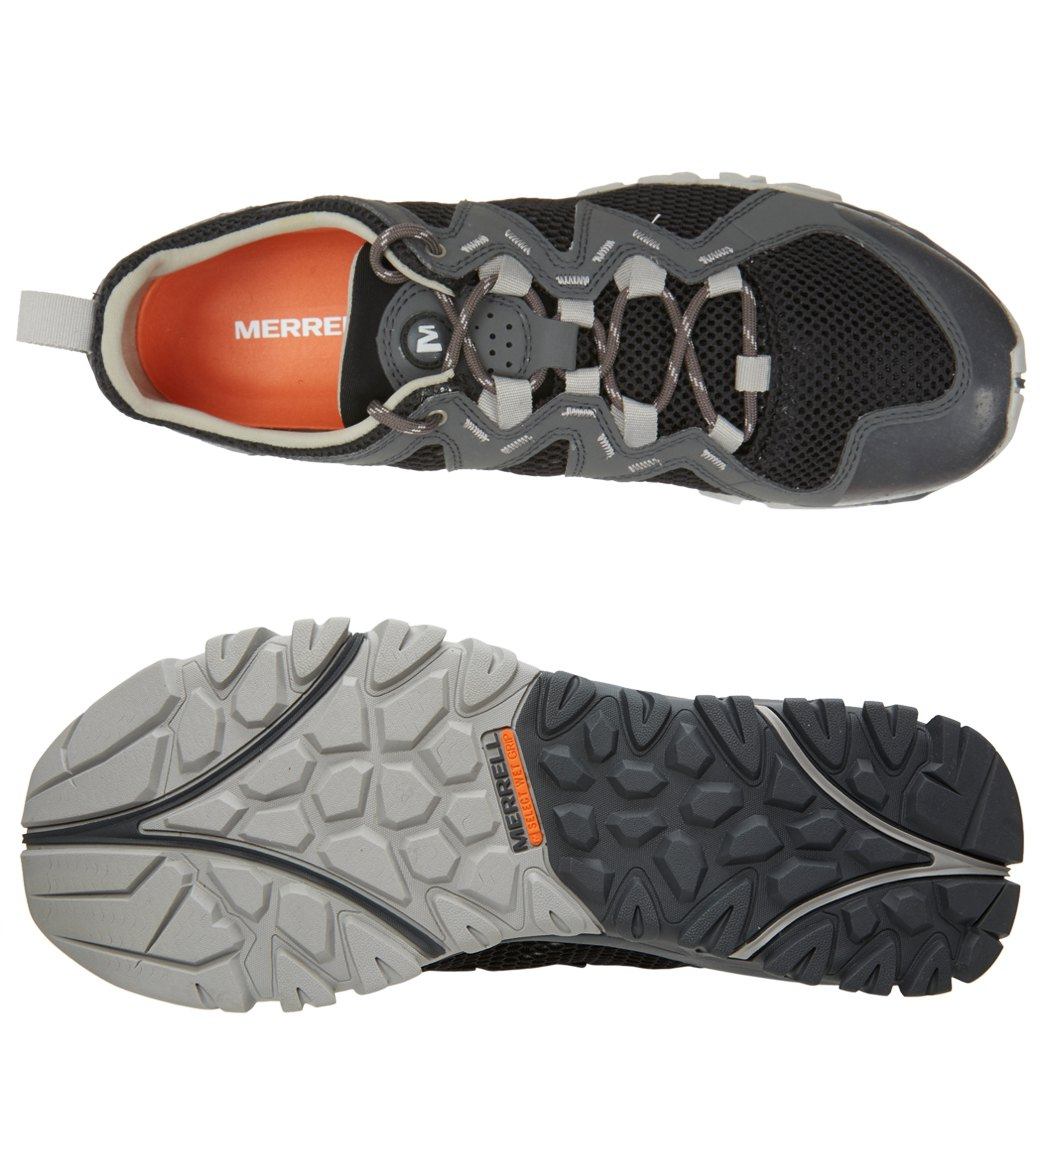 935c421d5827 Merrell Men s Tetrex Rapid Crest Water Shoe at SwimOutlet.com - Free ...